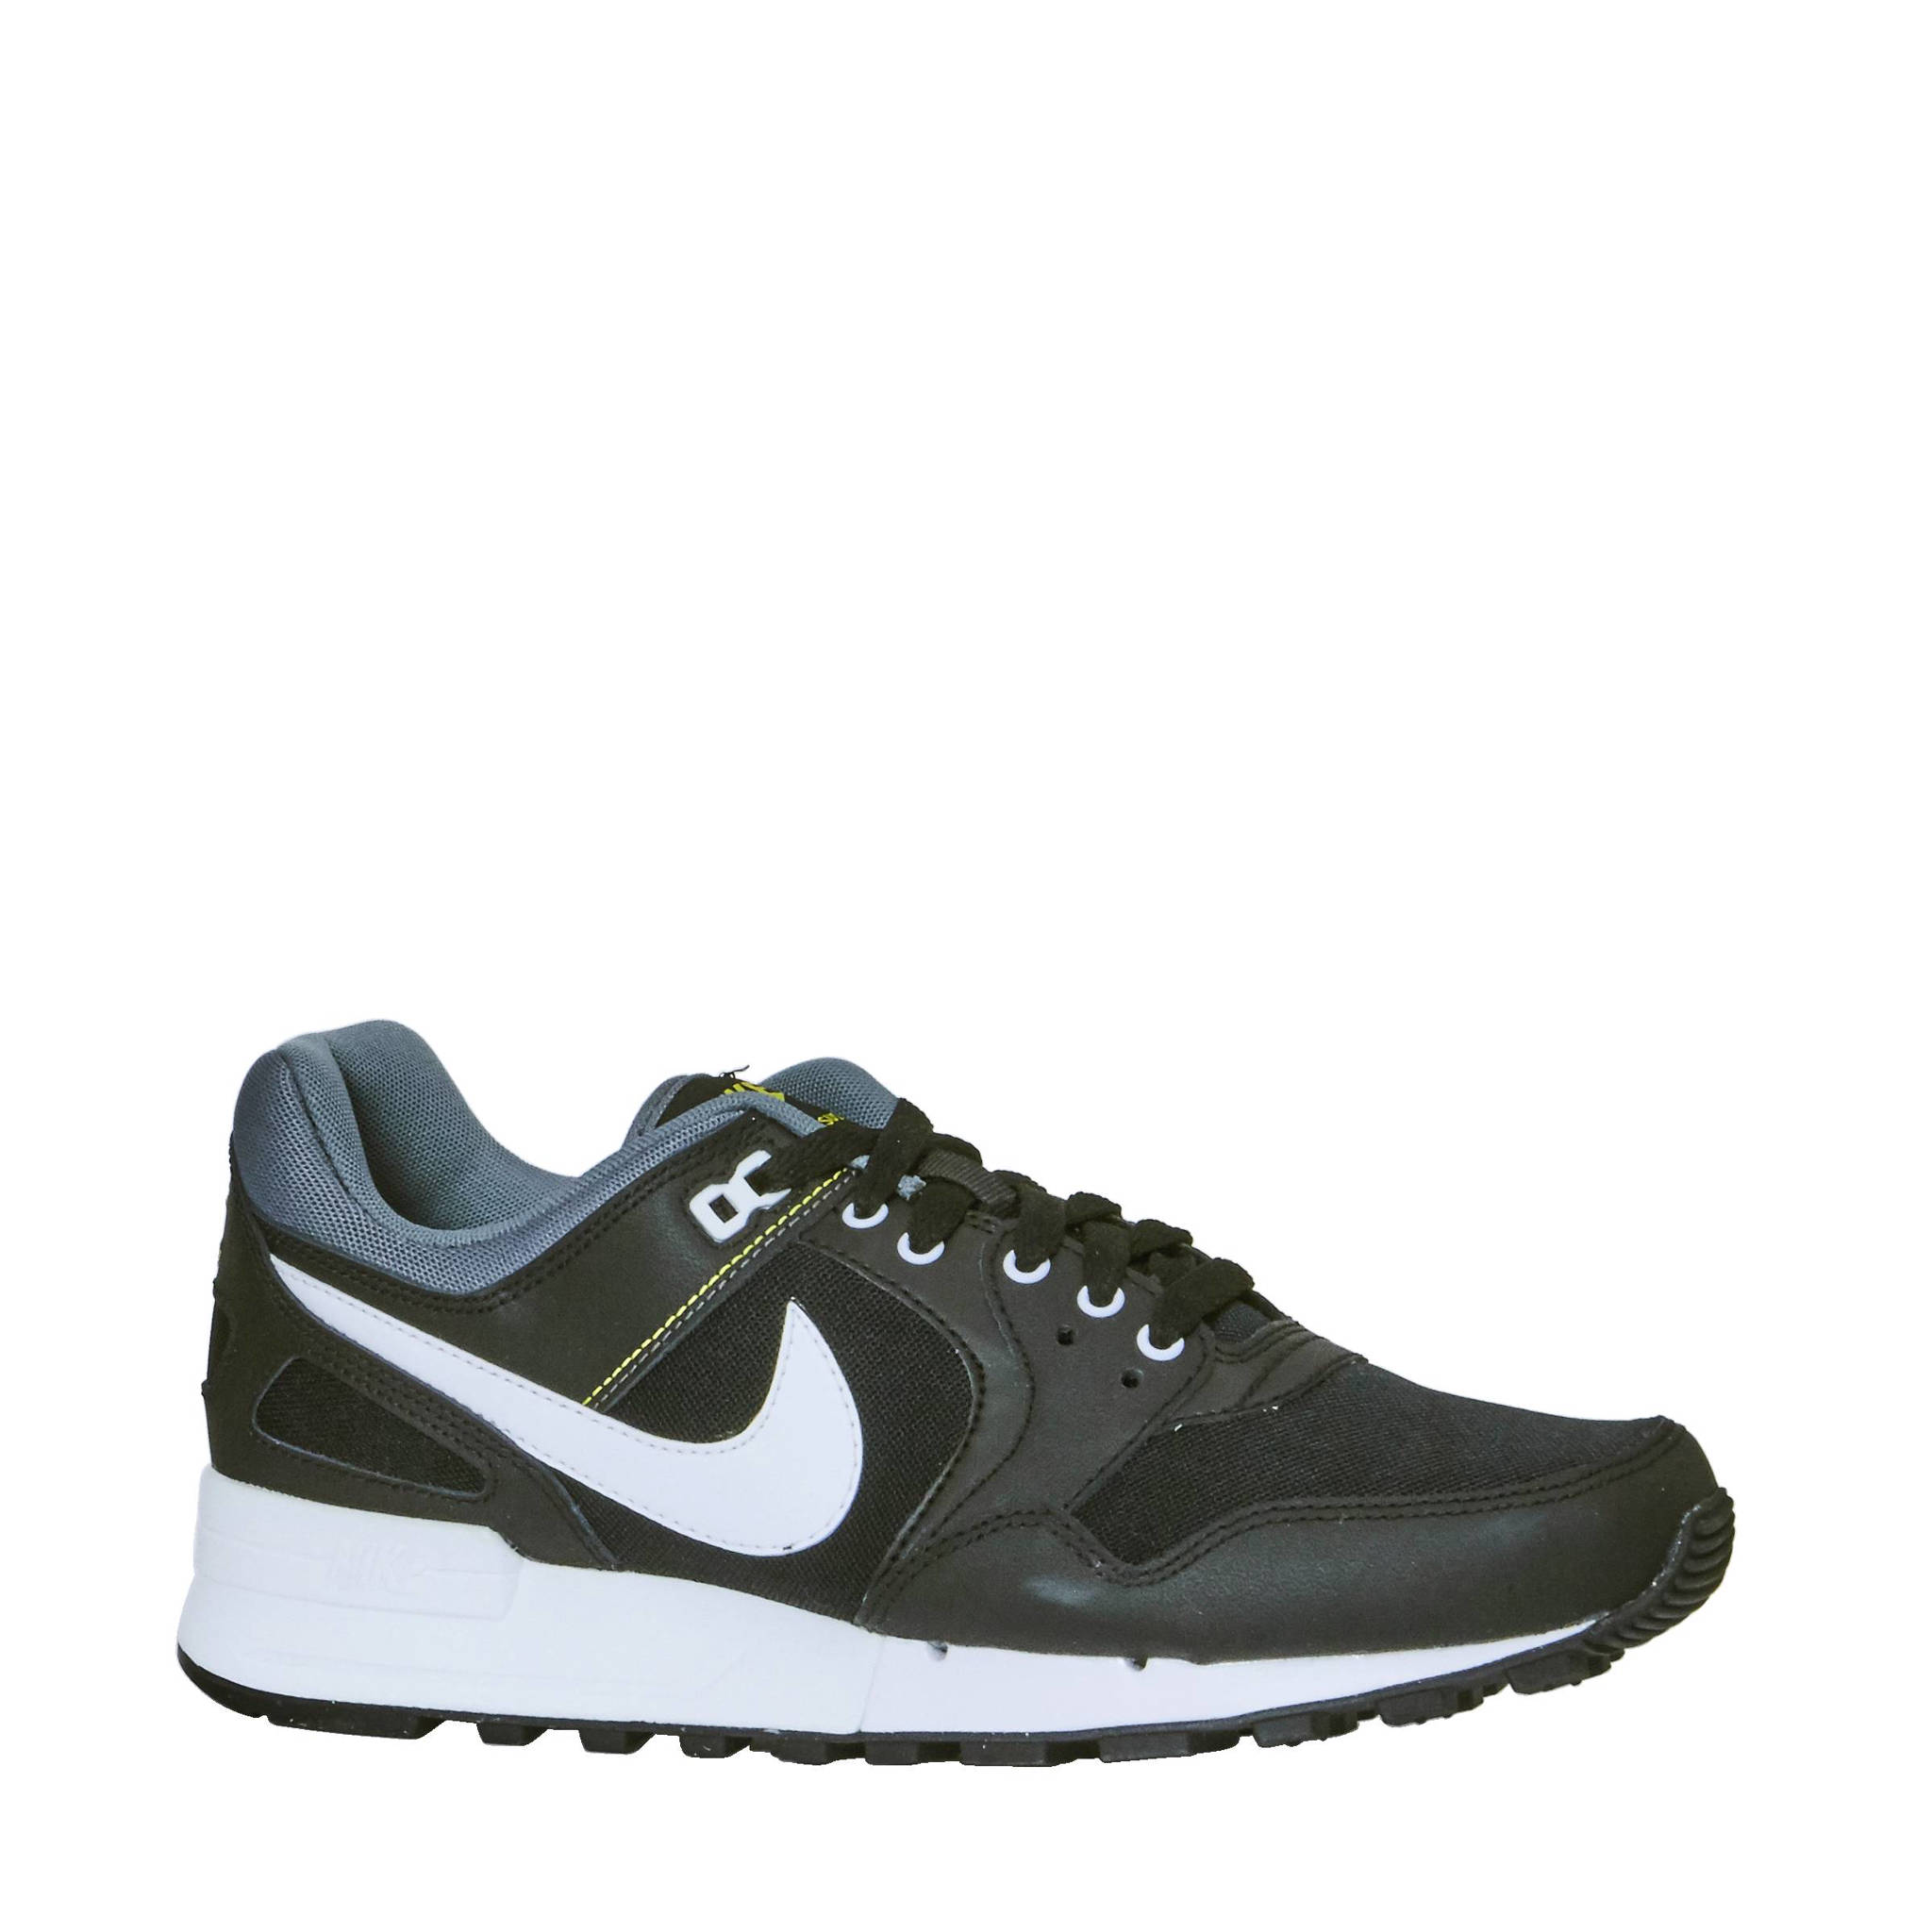 97d979a856876 Nike Air Pegasus 89 sneakers